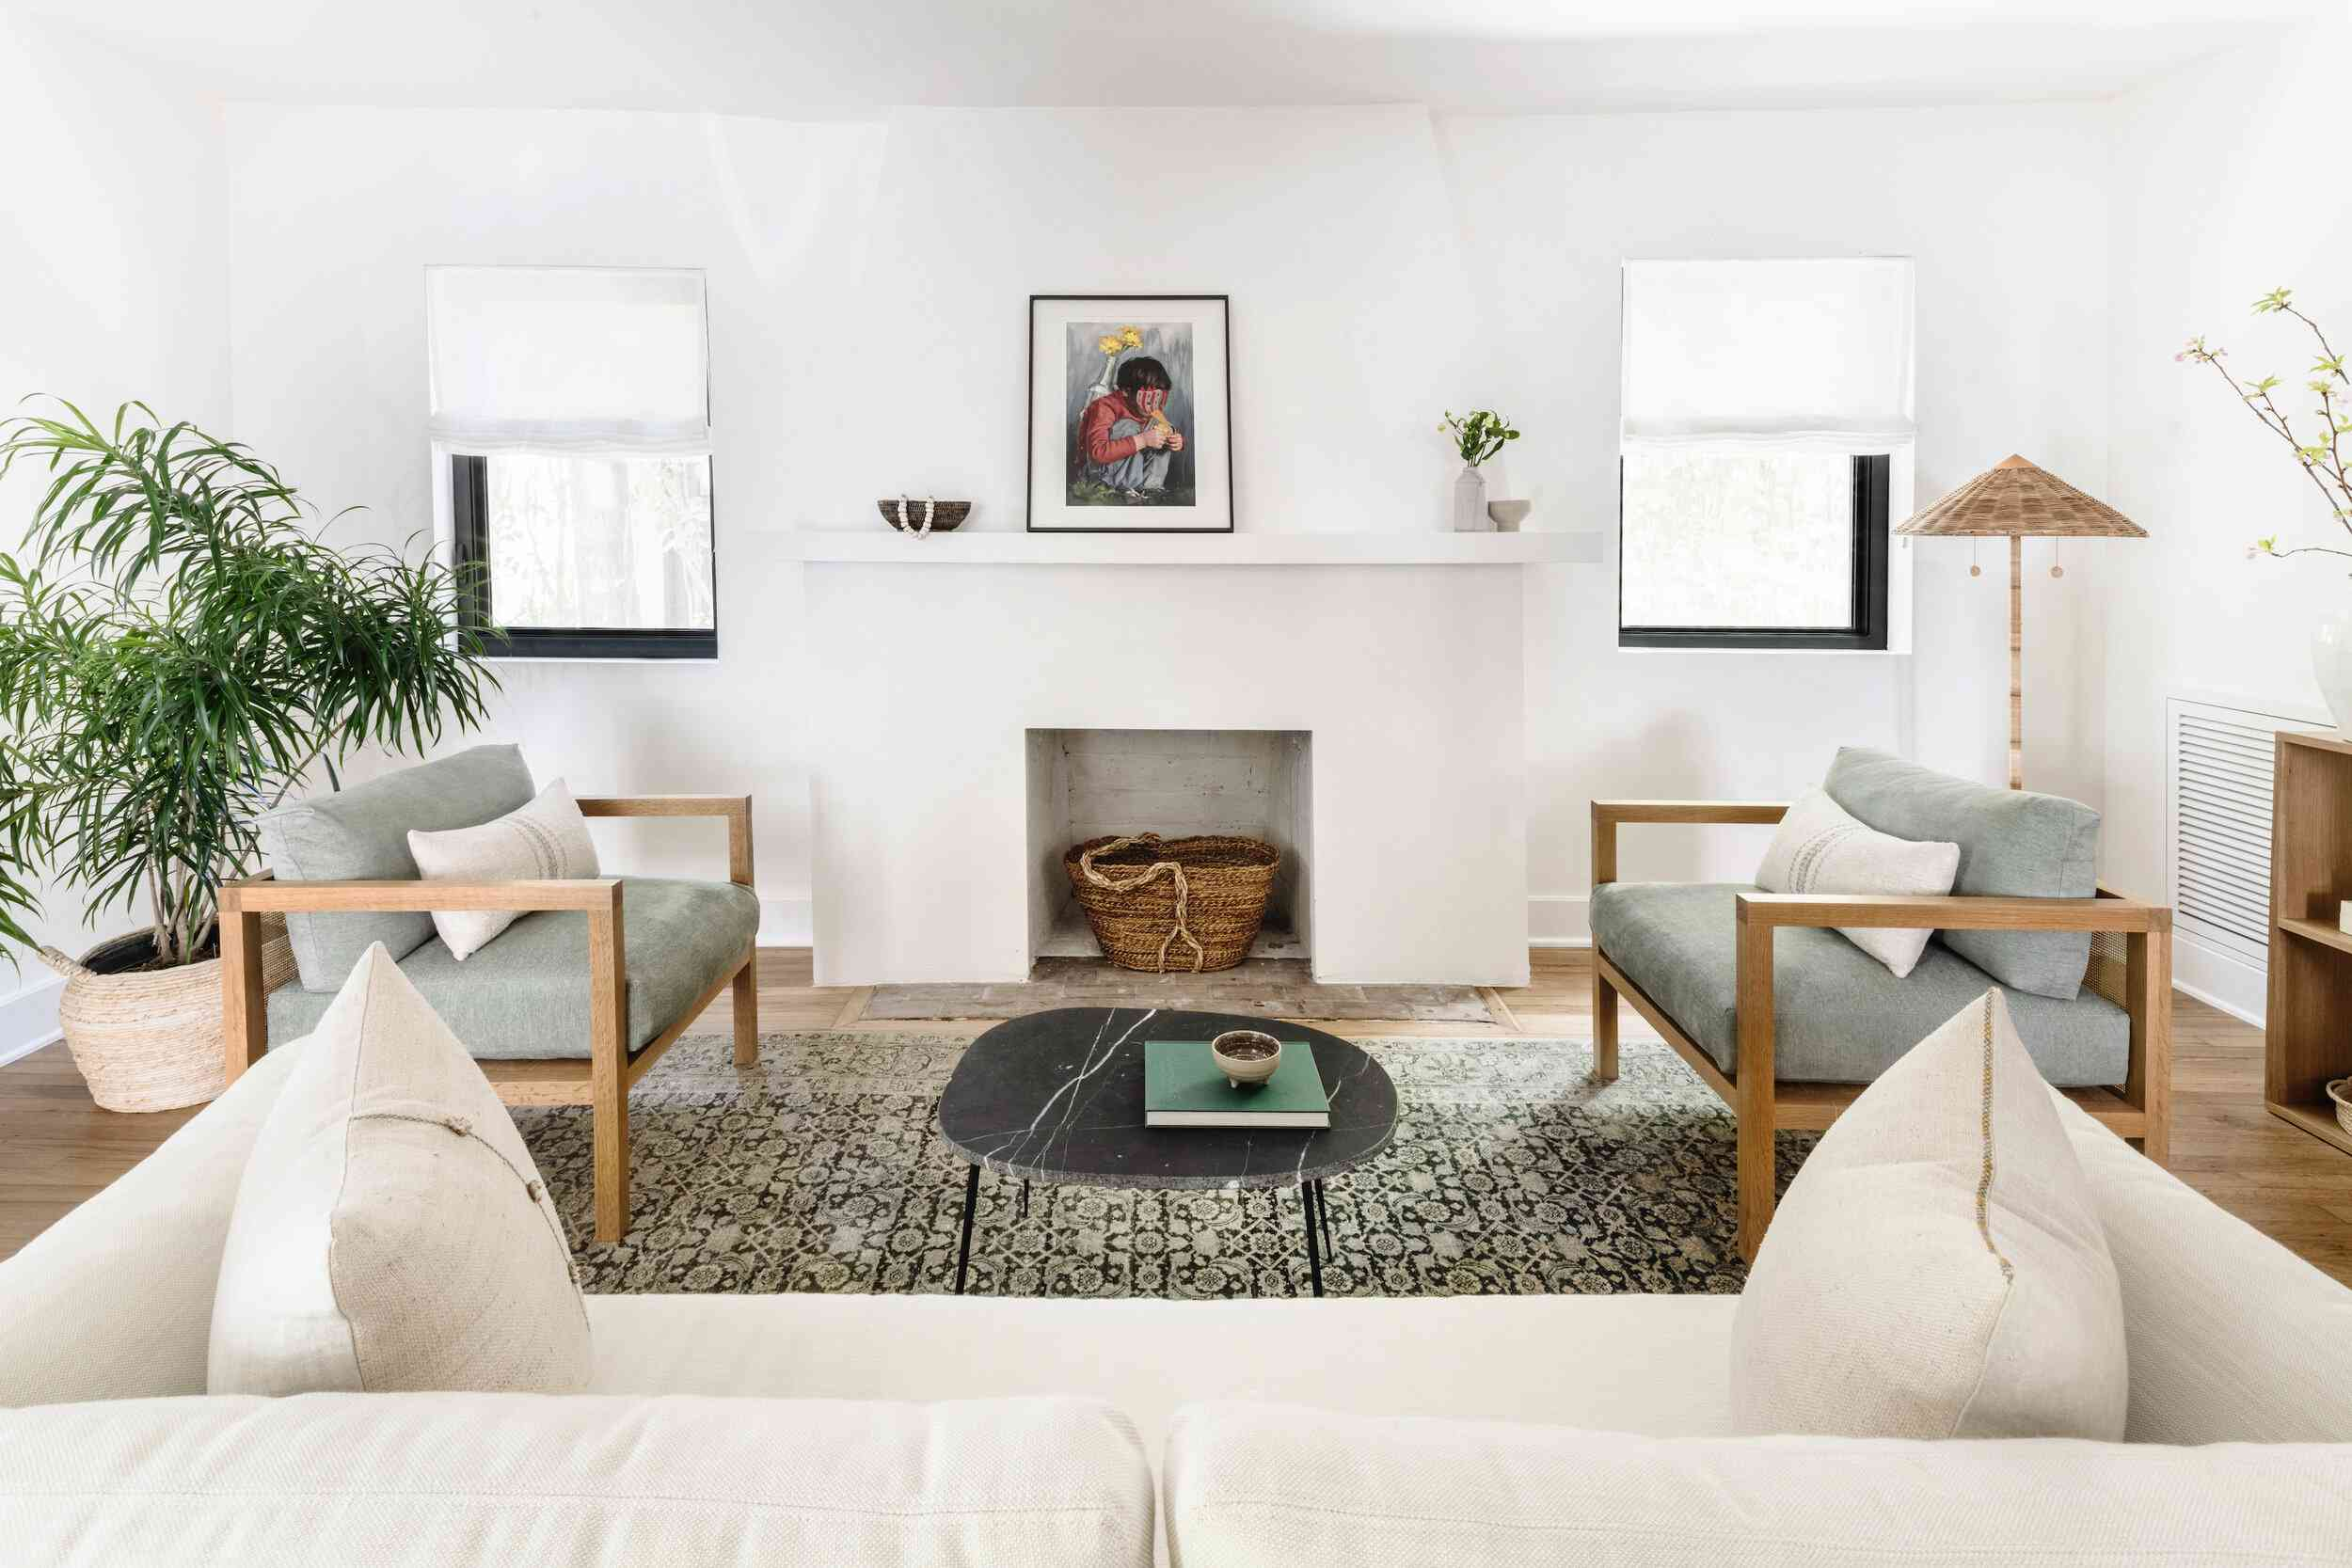 Living room with all-white fire place, white couch, patterned area rug